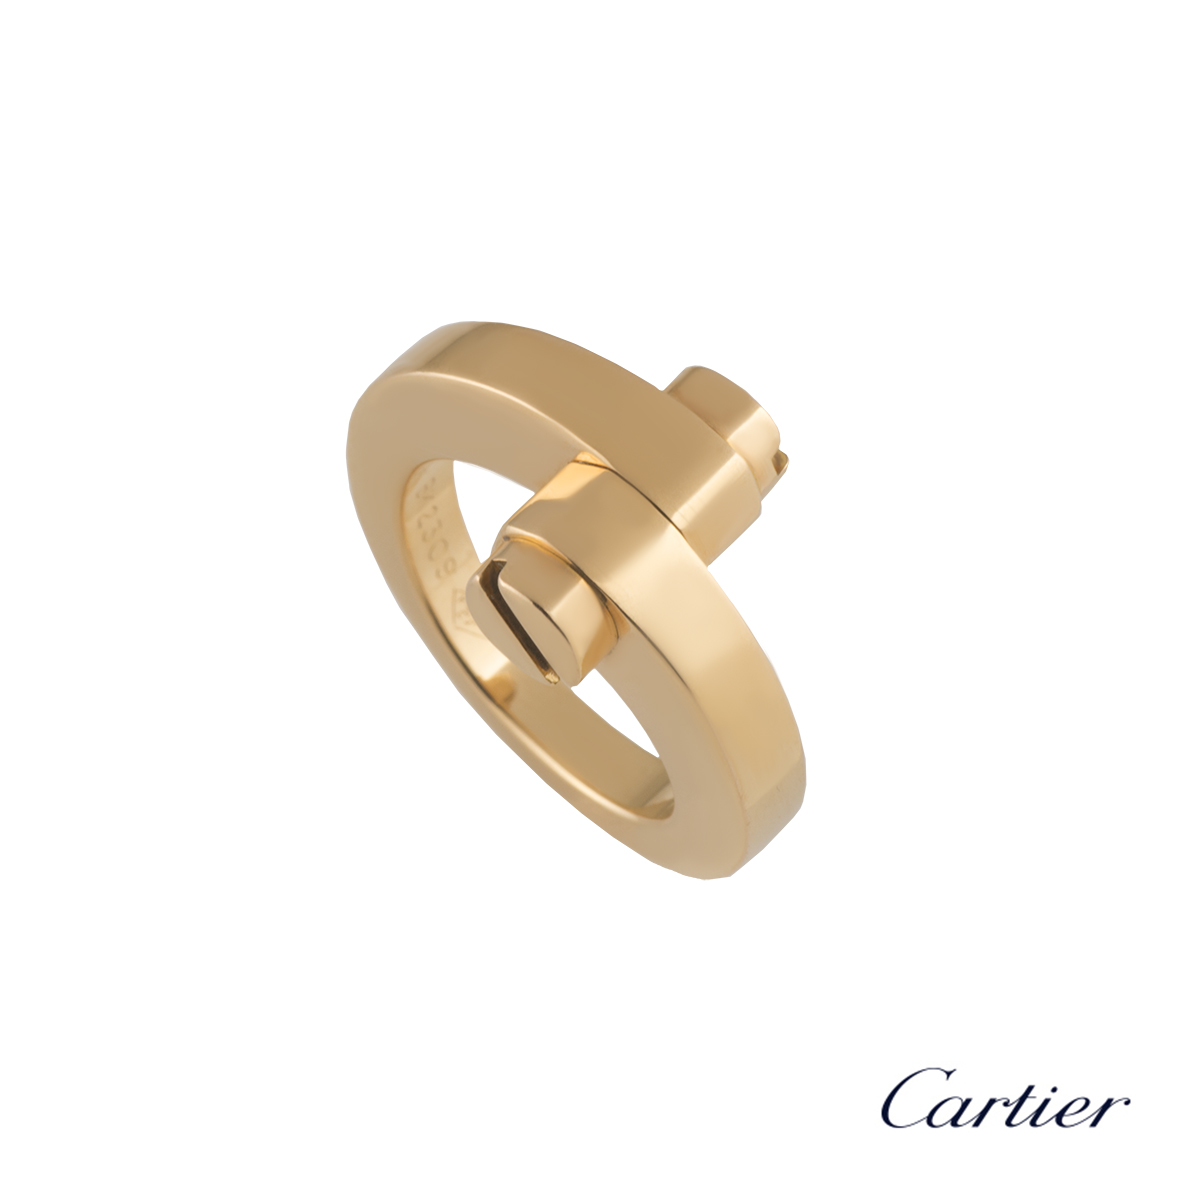 Cartier Rose Gold Menotte Ring